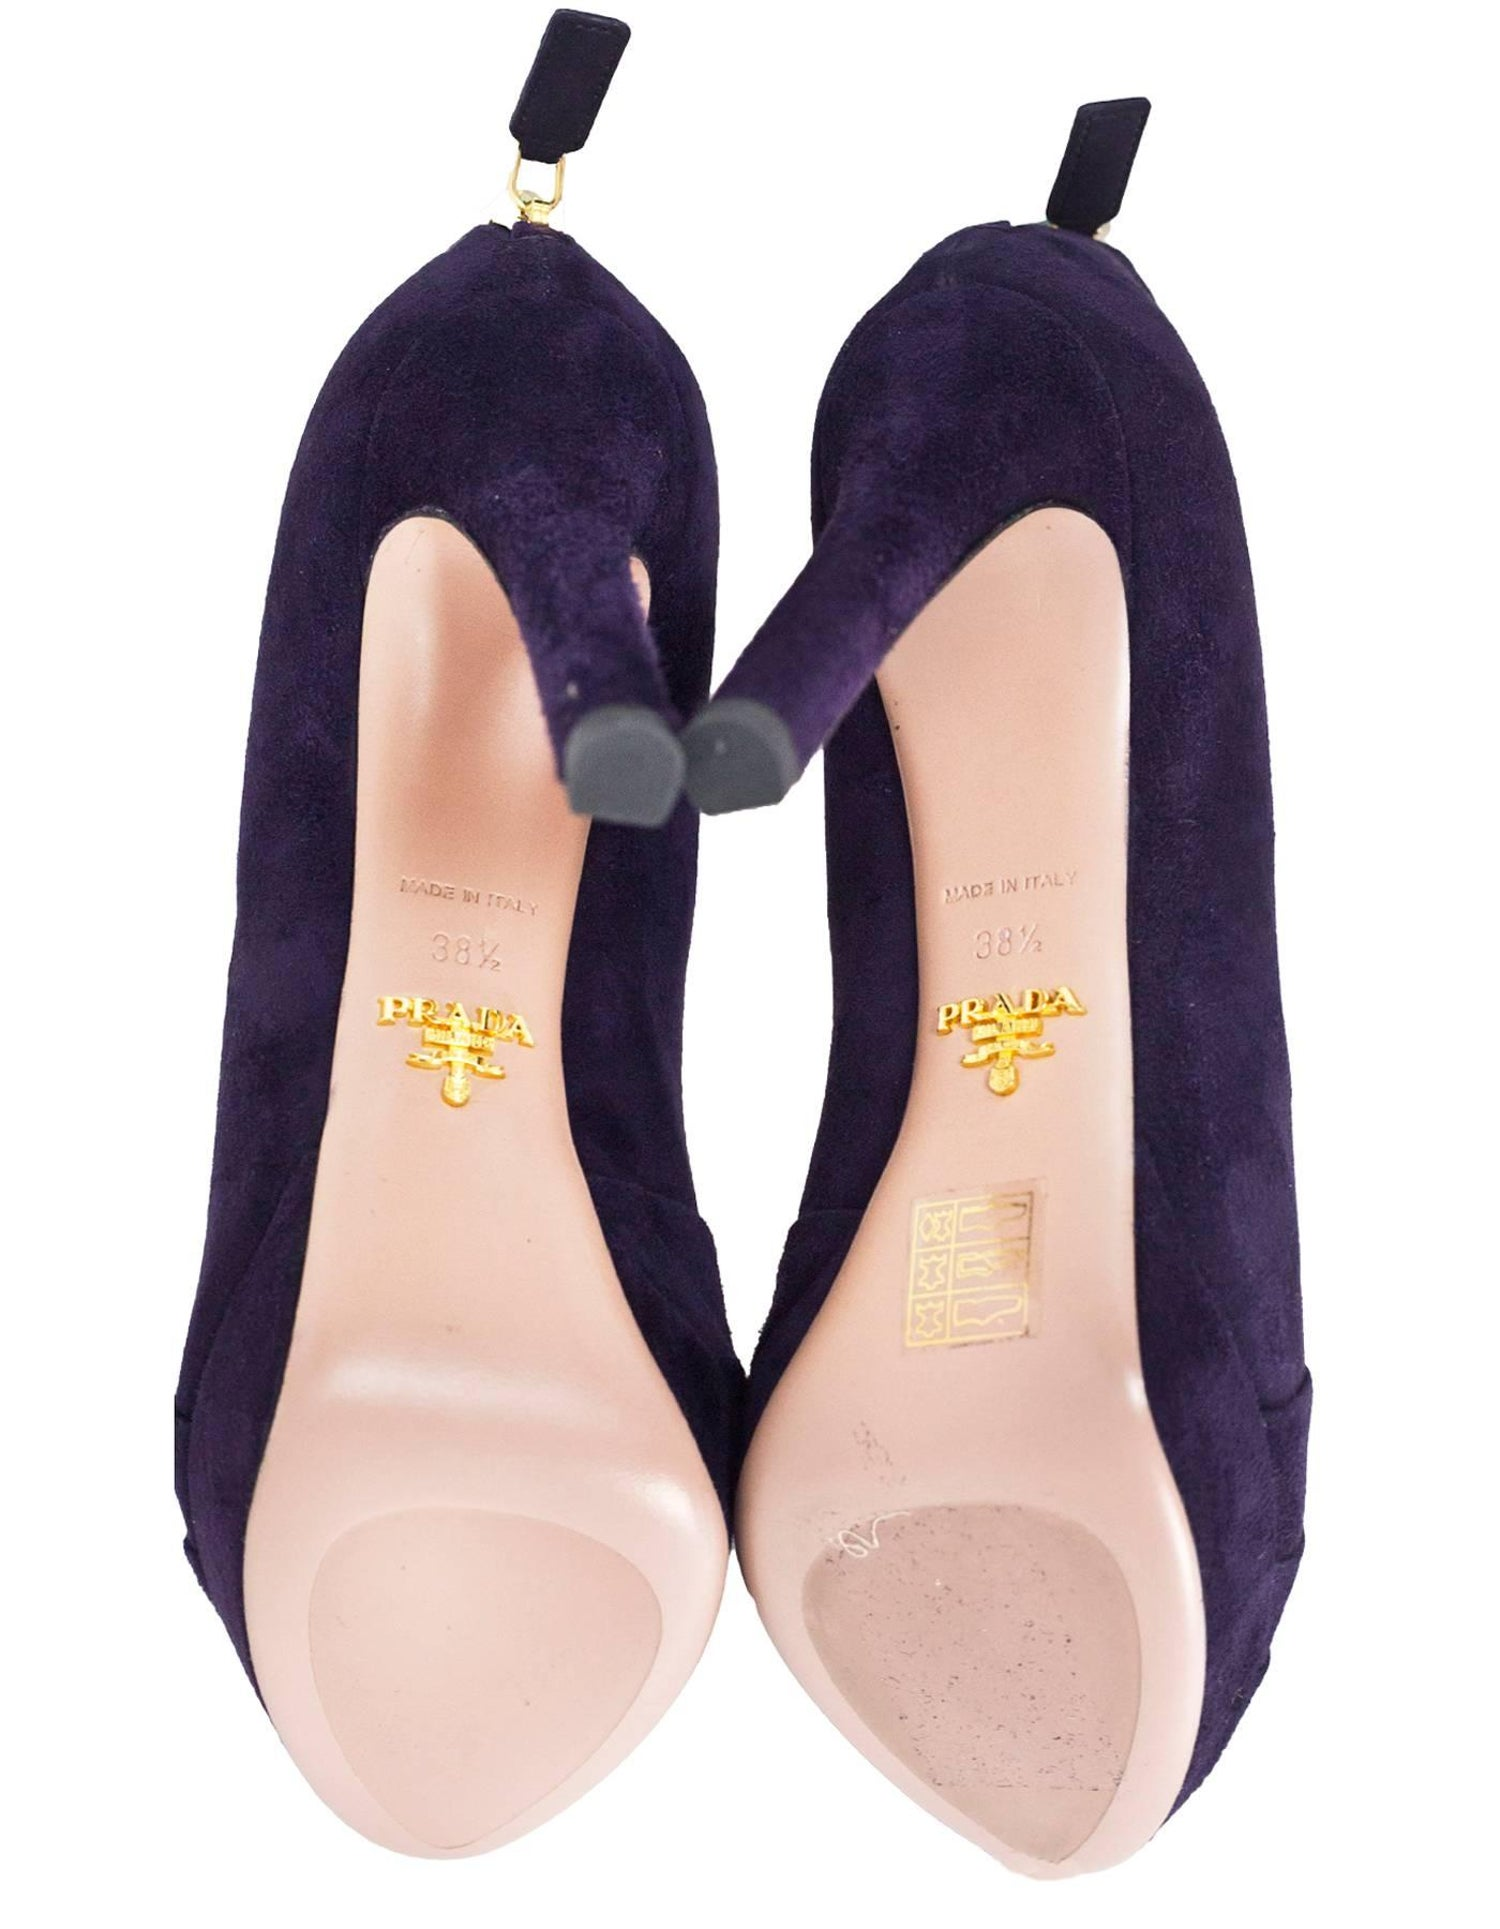 dc75b0aad Prada Dark Purple Suede Pumps Sz 38.5 NEW For Sale at 1stdibs